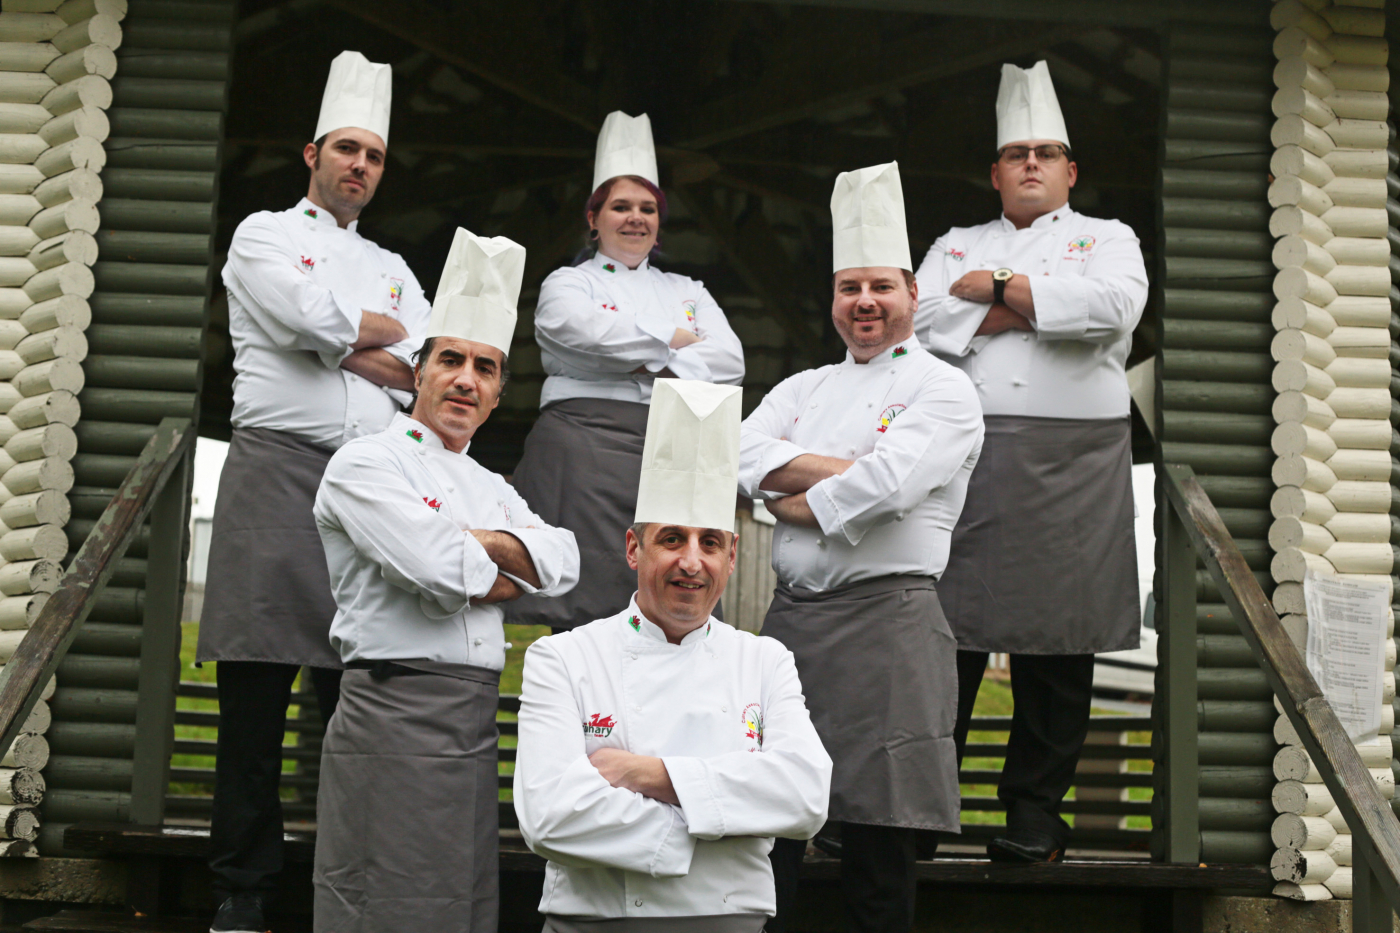 Two teams of chefs to represent Wales at the Culinary Olympics